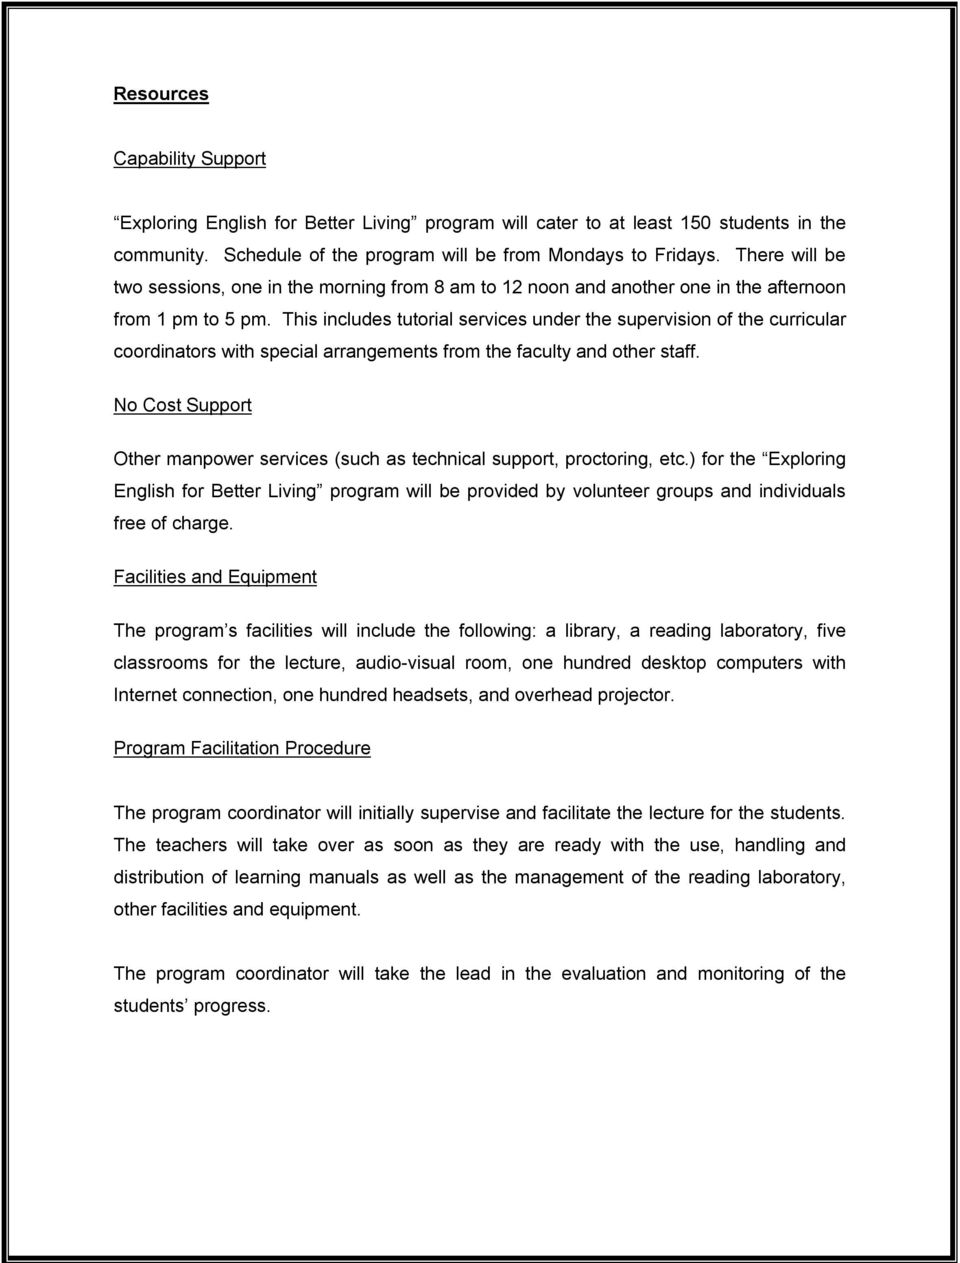 This includes tutorial services under the supervision of the curricular coordinators with special arrangements from the faculty and other staff.